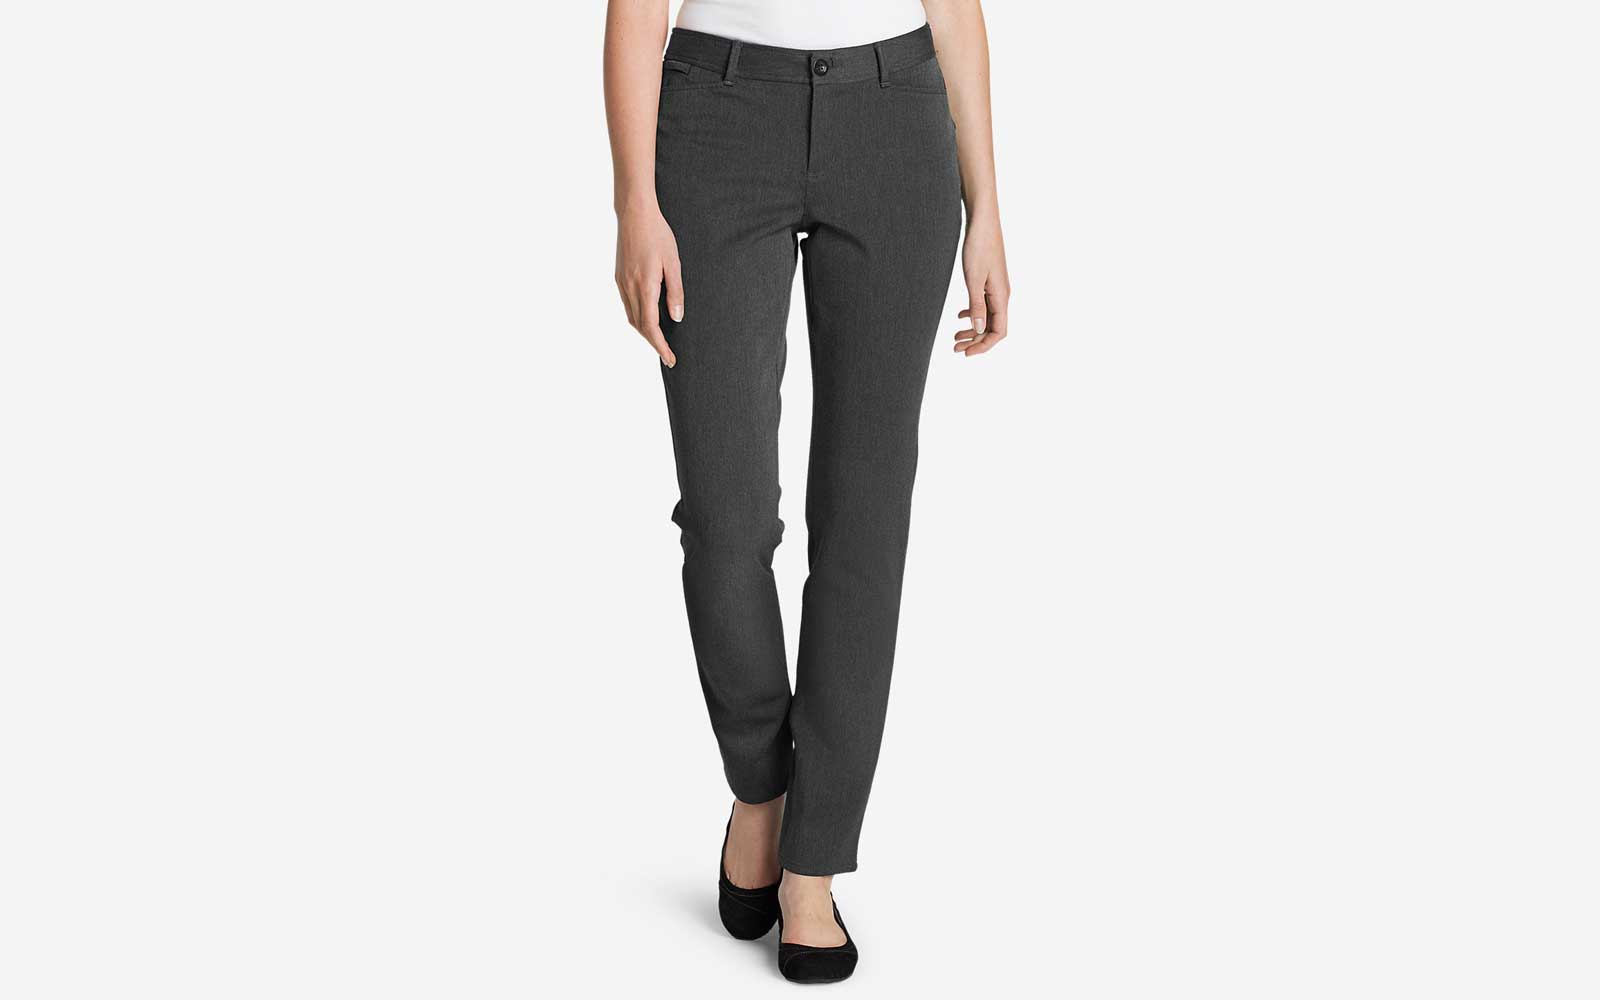 f0e382fde99 The Best Travel Pants for Women Who Hate Flying in Jeans | Travel + Leisure